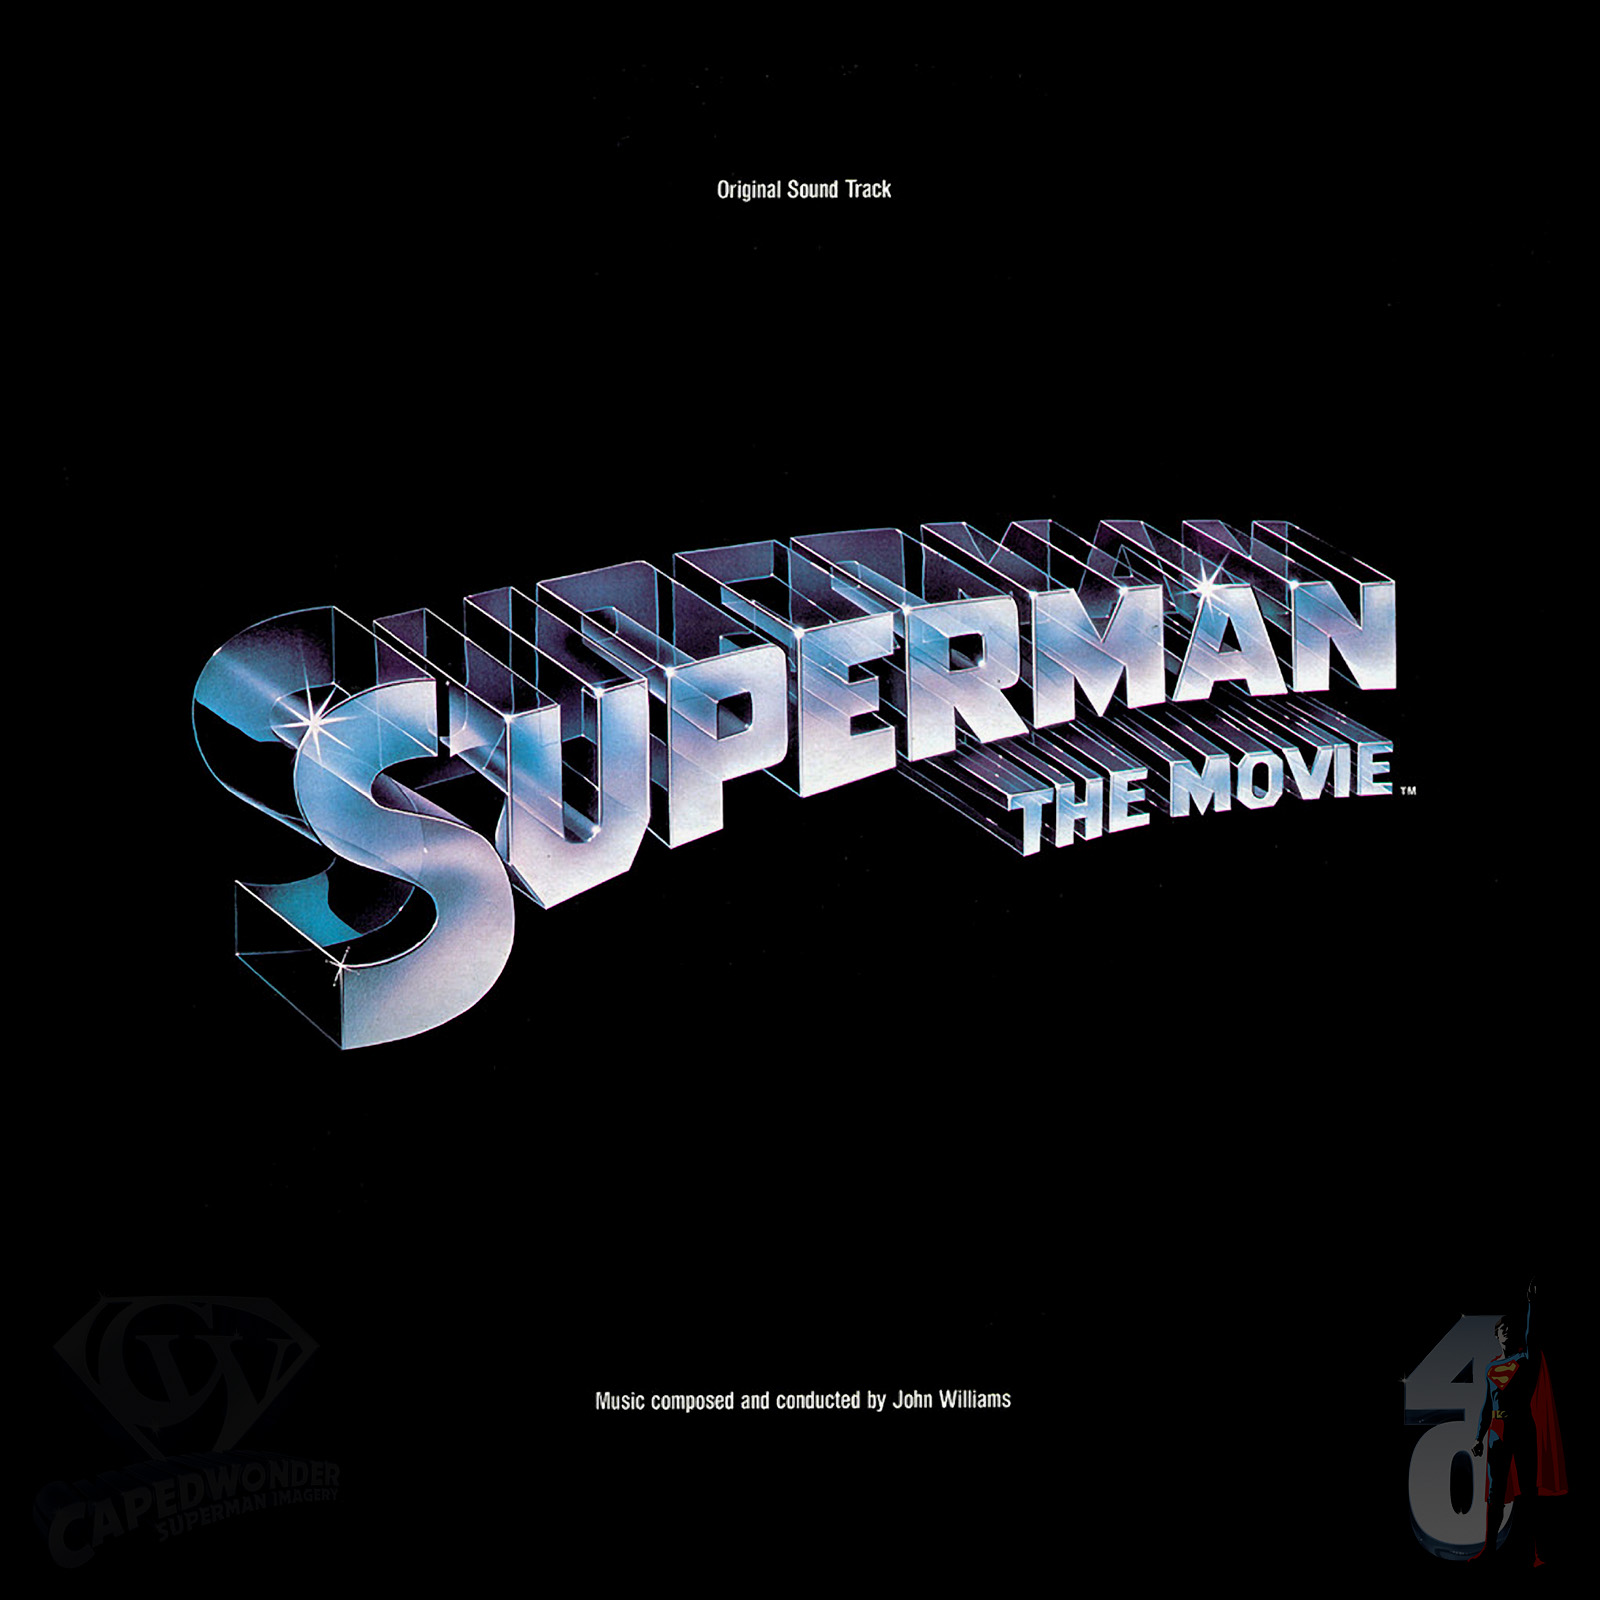 CW-STM-1978-soundtrack-LP-front-cover